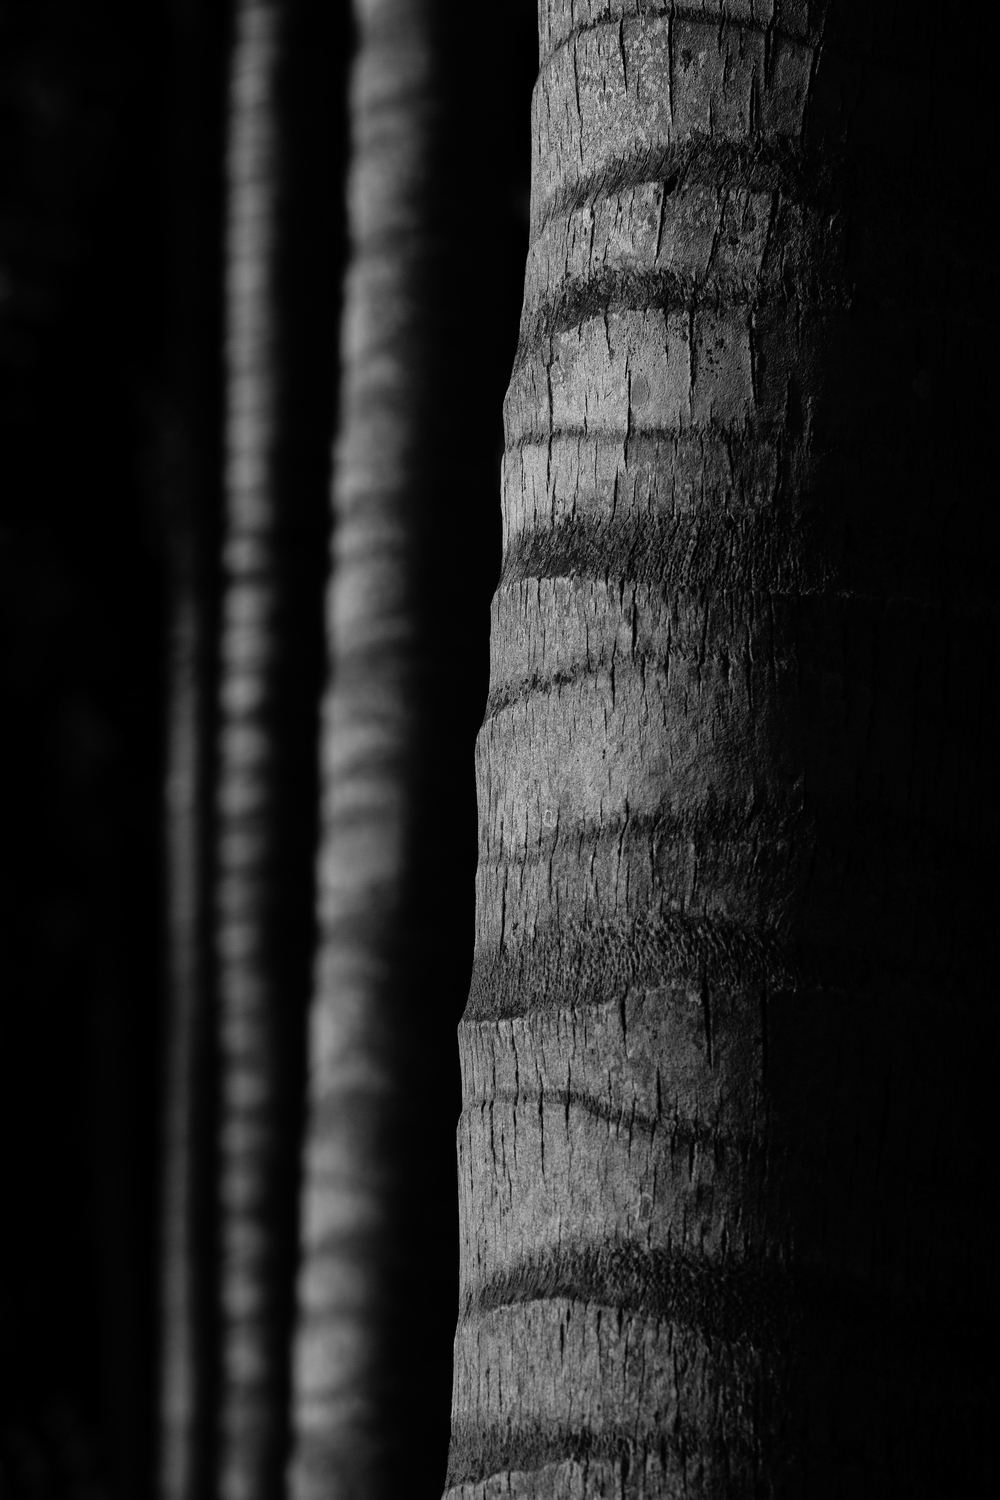 Trunks of Palm Trees_resize.jpg